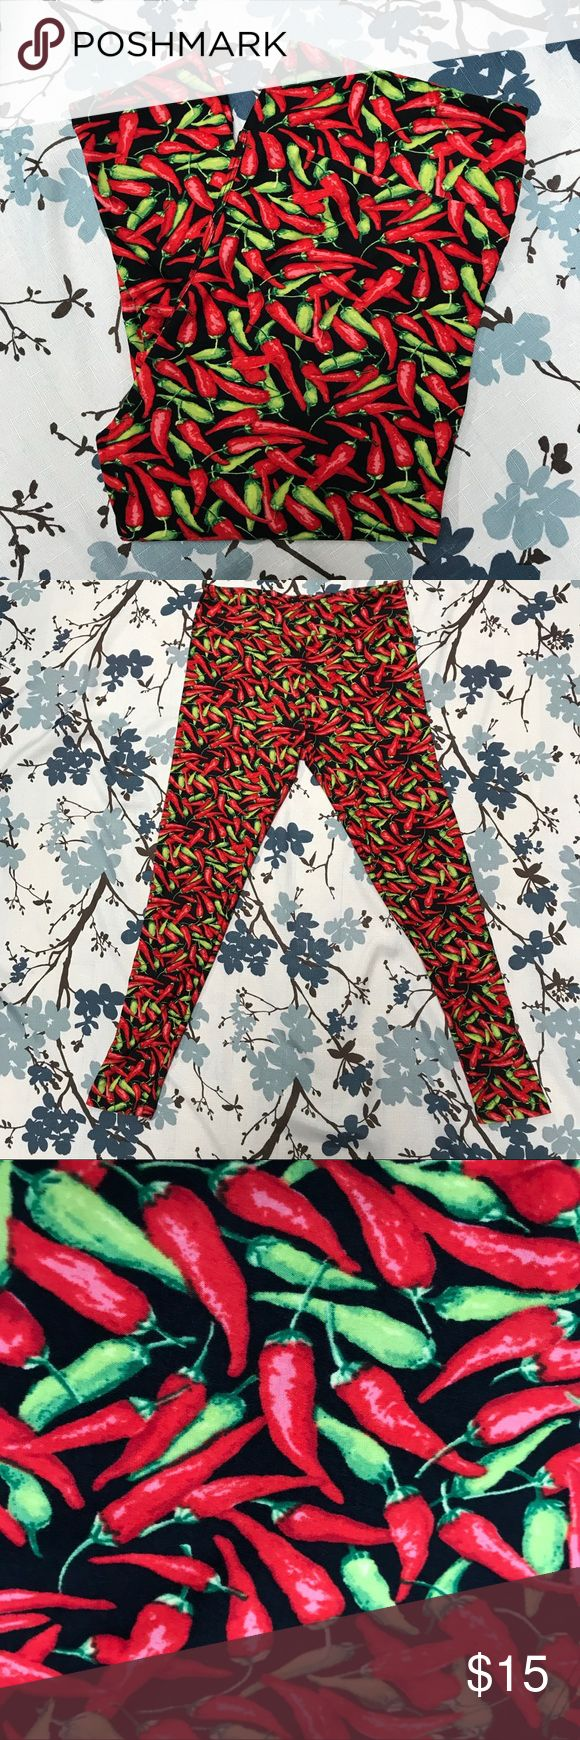 """Buttery Soft Chili Pepper Leggings size L/Xl Great condition green and red chili pepper leggings on a black background. Buttery soft same feel as LuLaRoe leggings.  Size: L/XL Measurements unstreched but they are very stretchy.  Waist: 30"""" Inseam: 27""""   Buttery soft chili pepper leggings size L/XL Pants Leggings"""